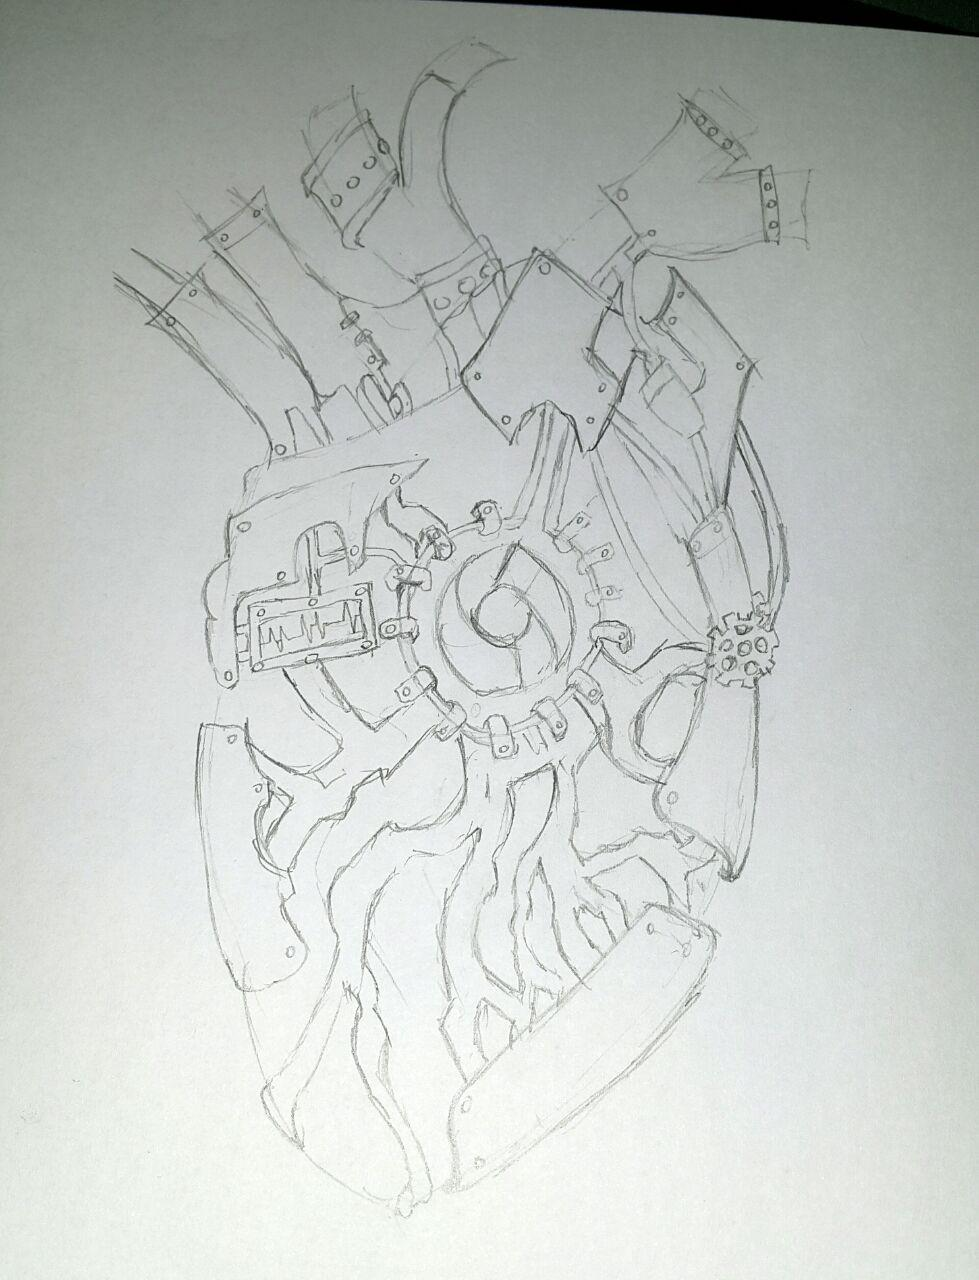 Final Sketch - Back of heart